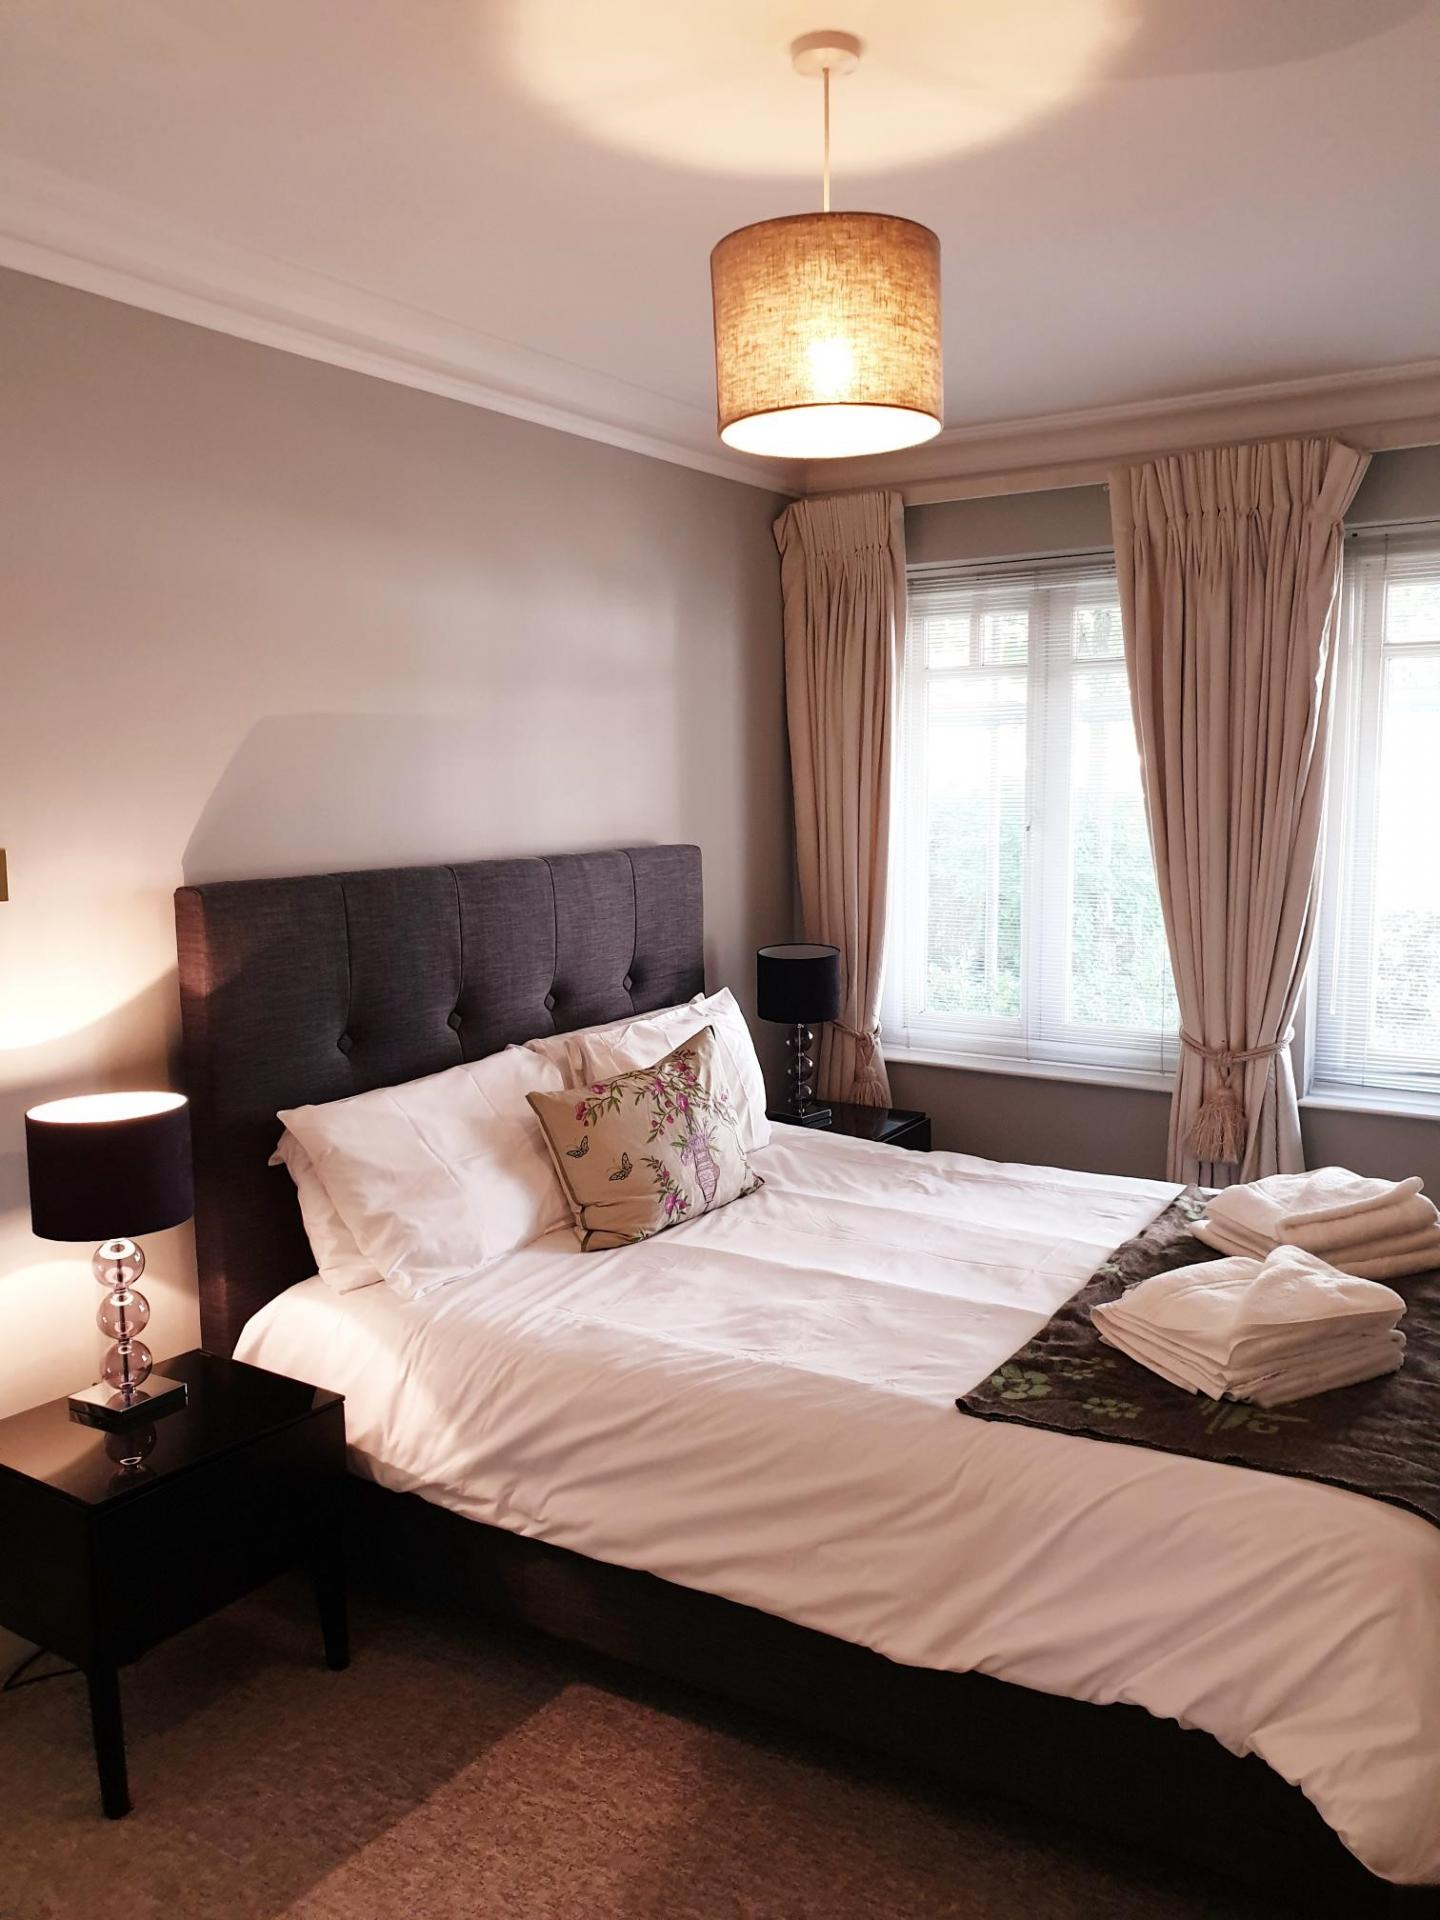 Bedding at Richmond Bridge Apartments, Richmond, London